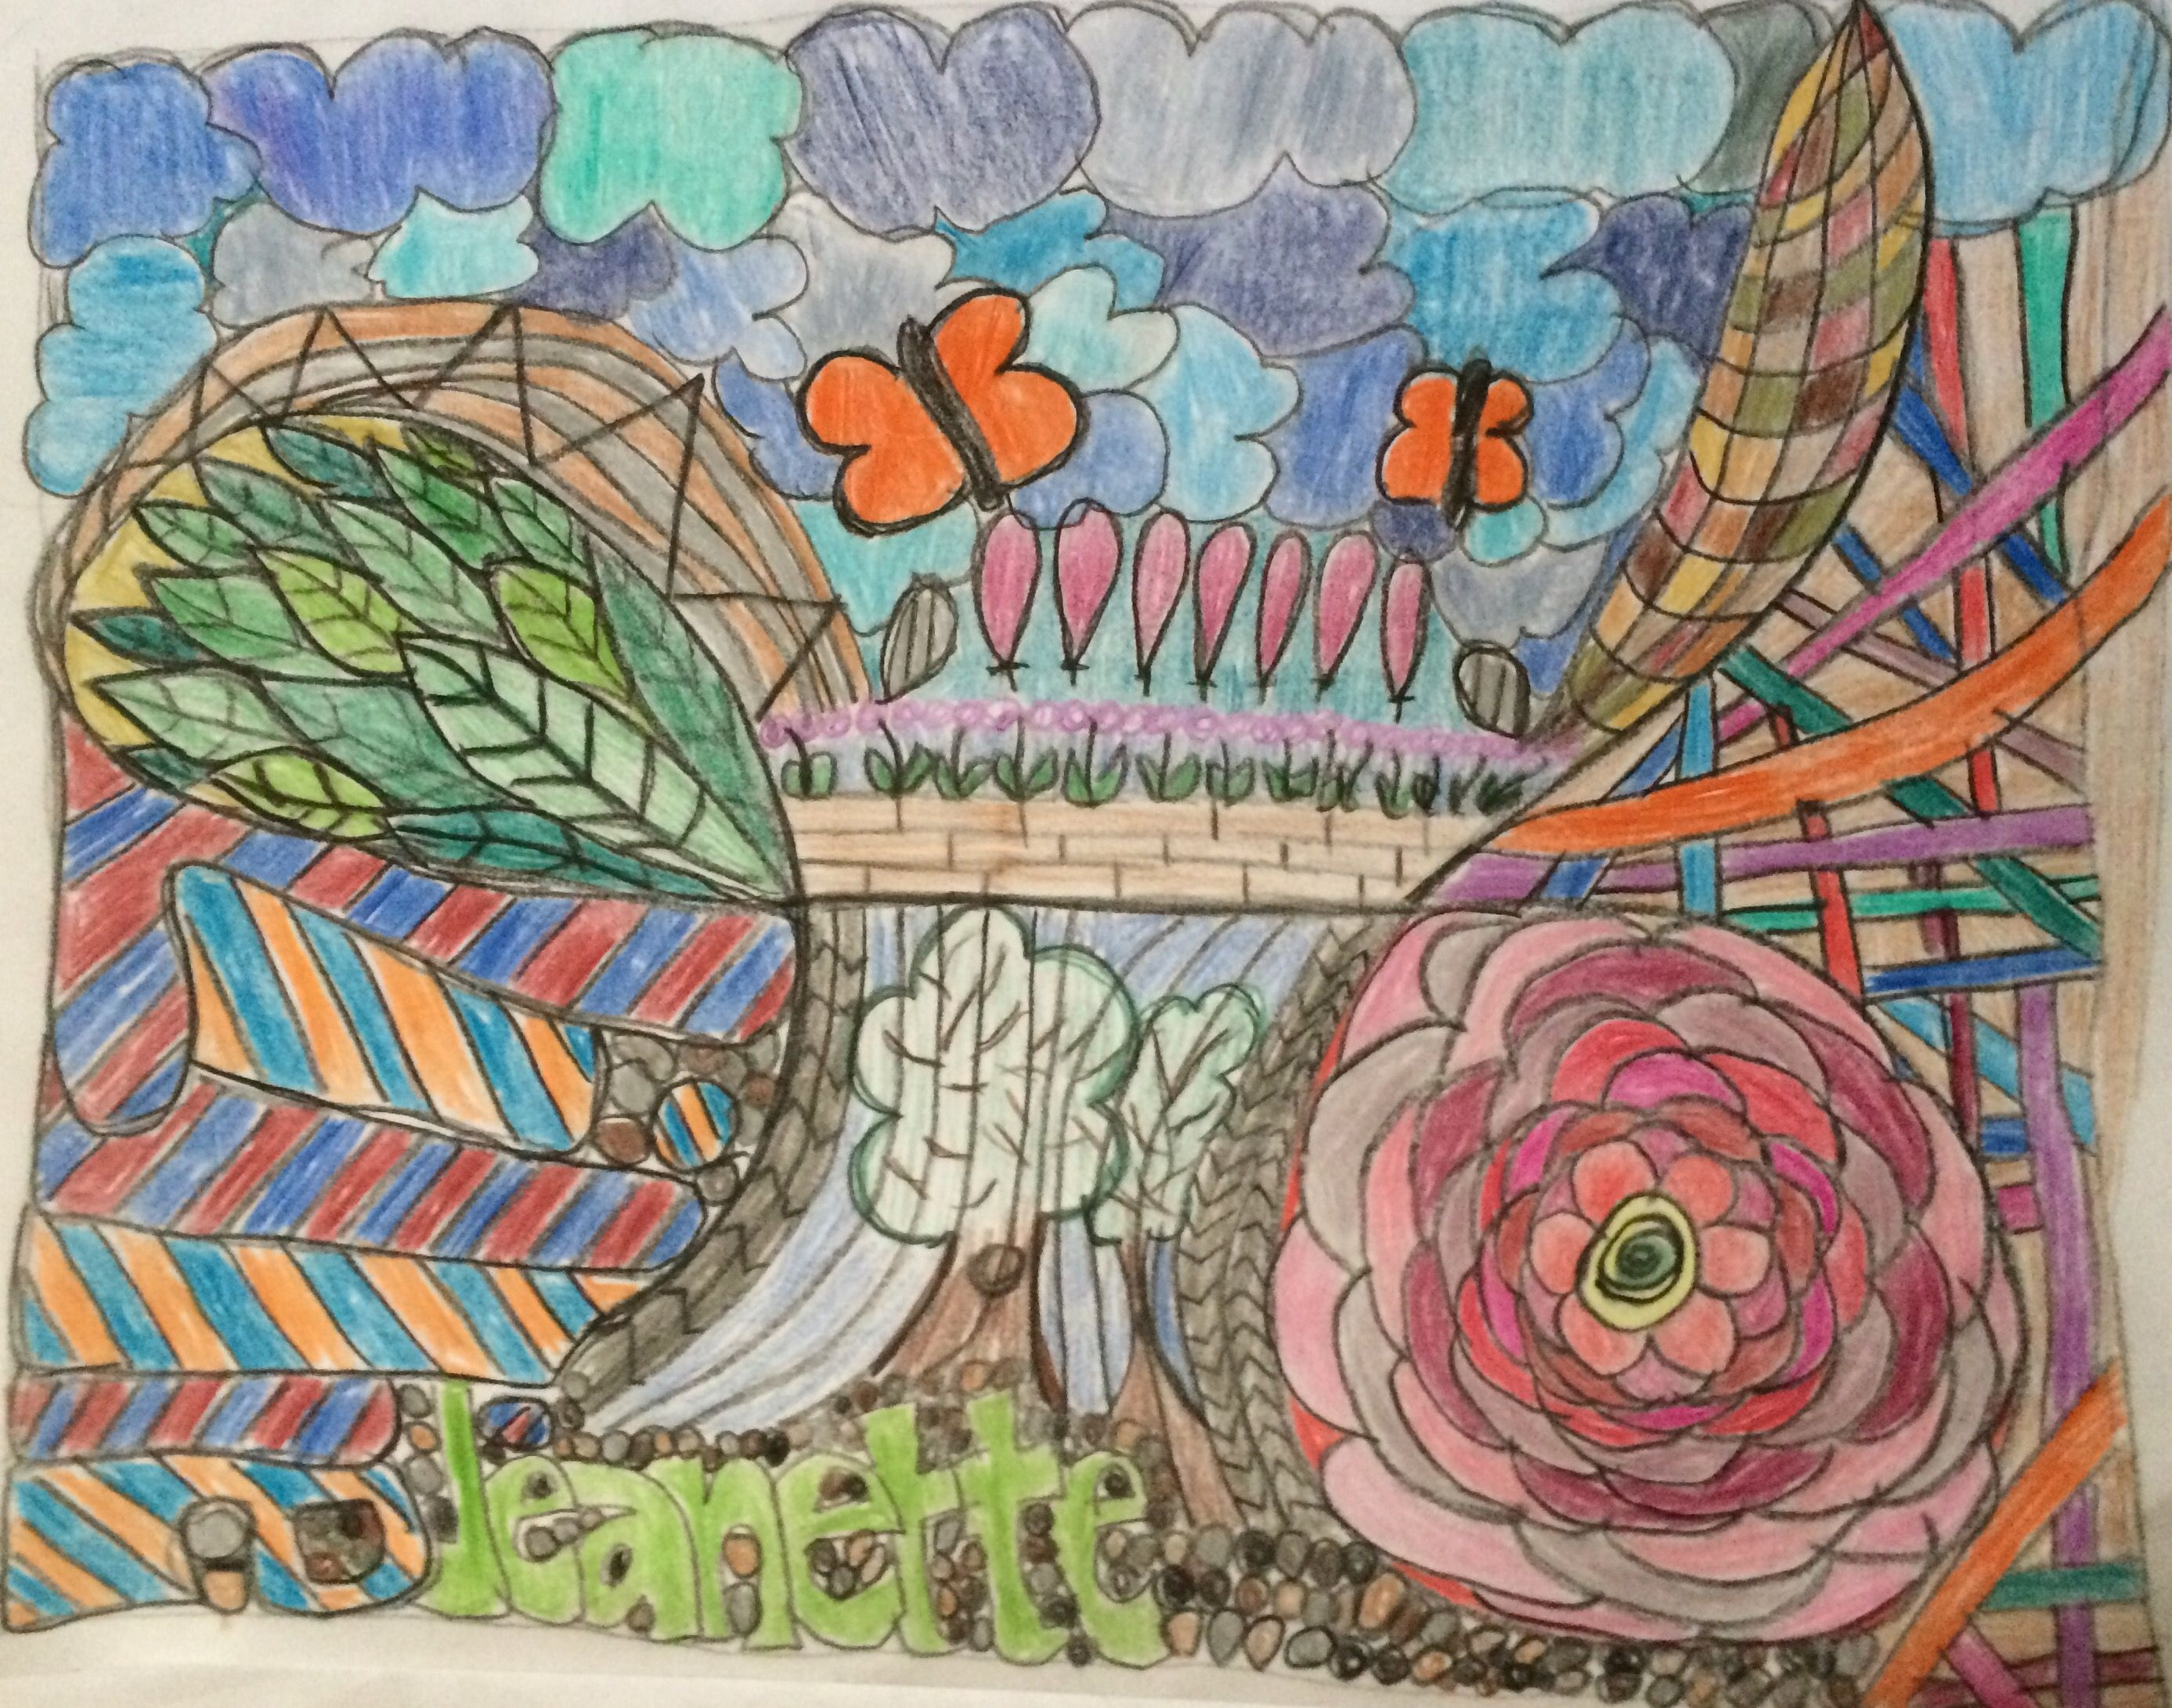 """Lillie submitted this Zentangle in our first show. """"The start of this zentangle started with the cursive capital L for my name. I didn't plan the rest of it but as I went on I added things that I love, the beauty of nature, flowers, trees, leaves, rocks, clouds, butterflies and grass. The zentangle represents the colorful roads of my life."""""""